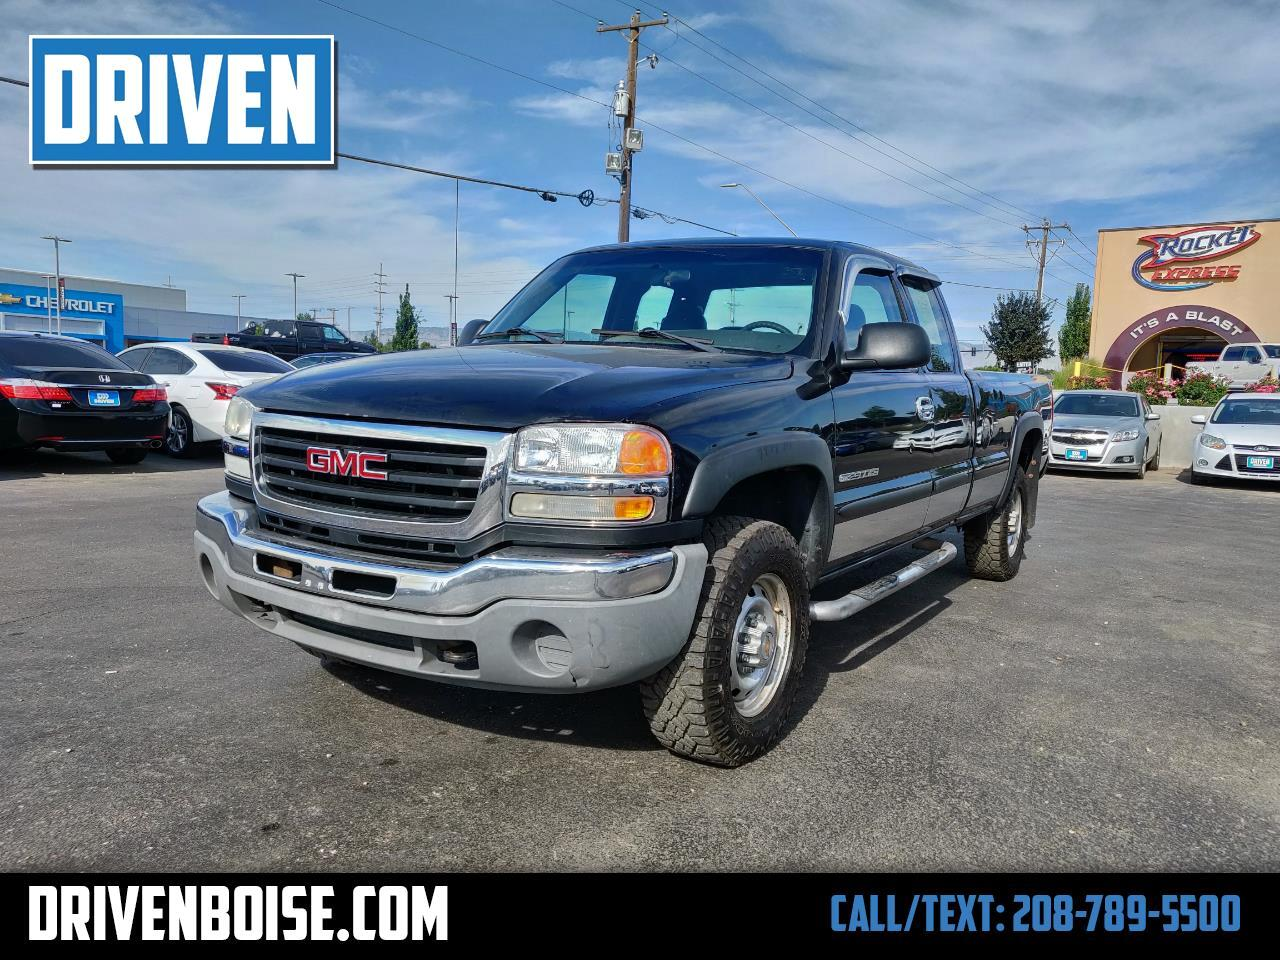 2003 GMC Sierra 2500HD Ext. Cab Long Bed 4WD